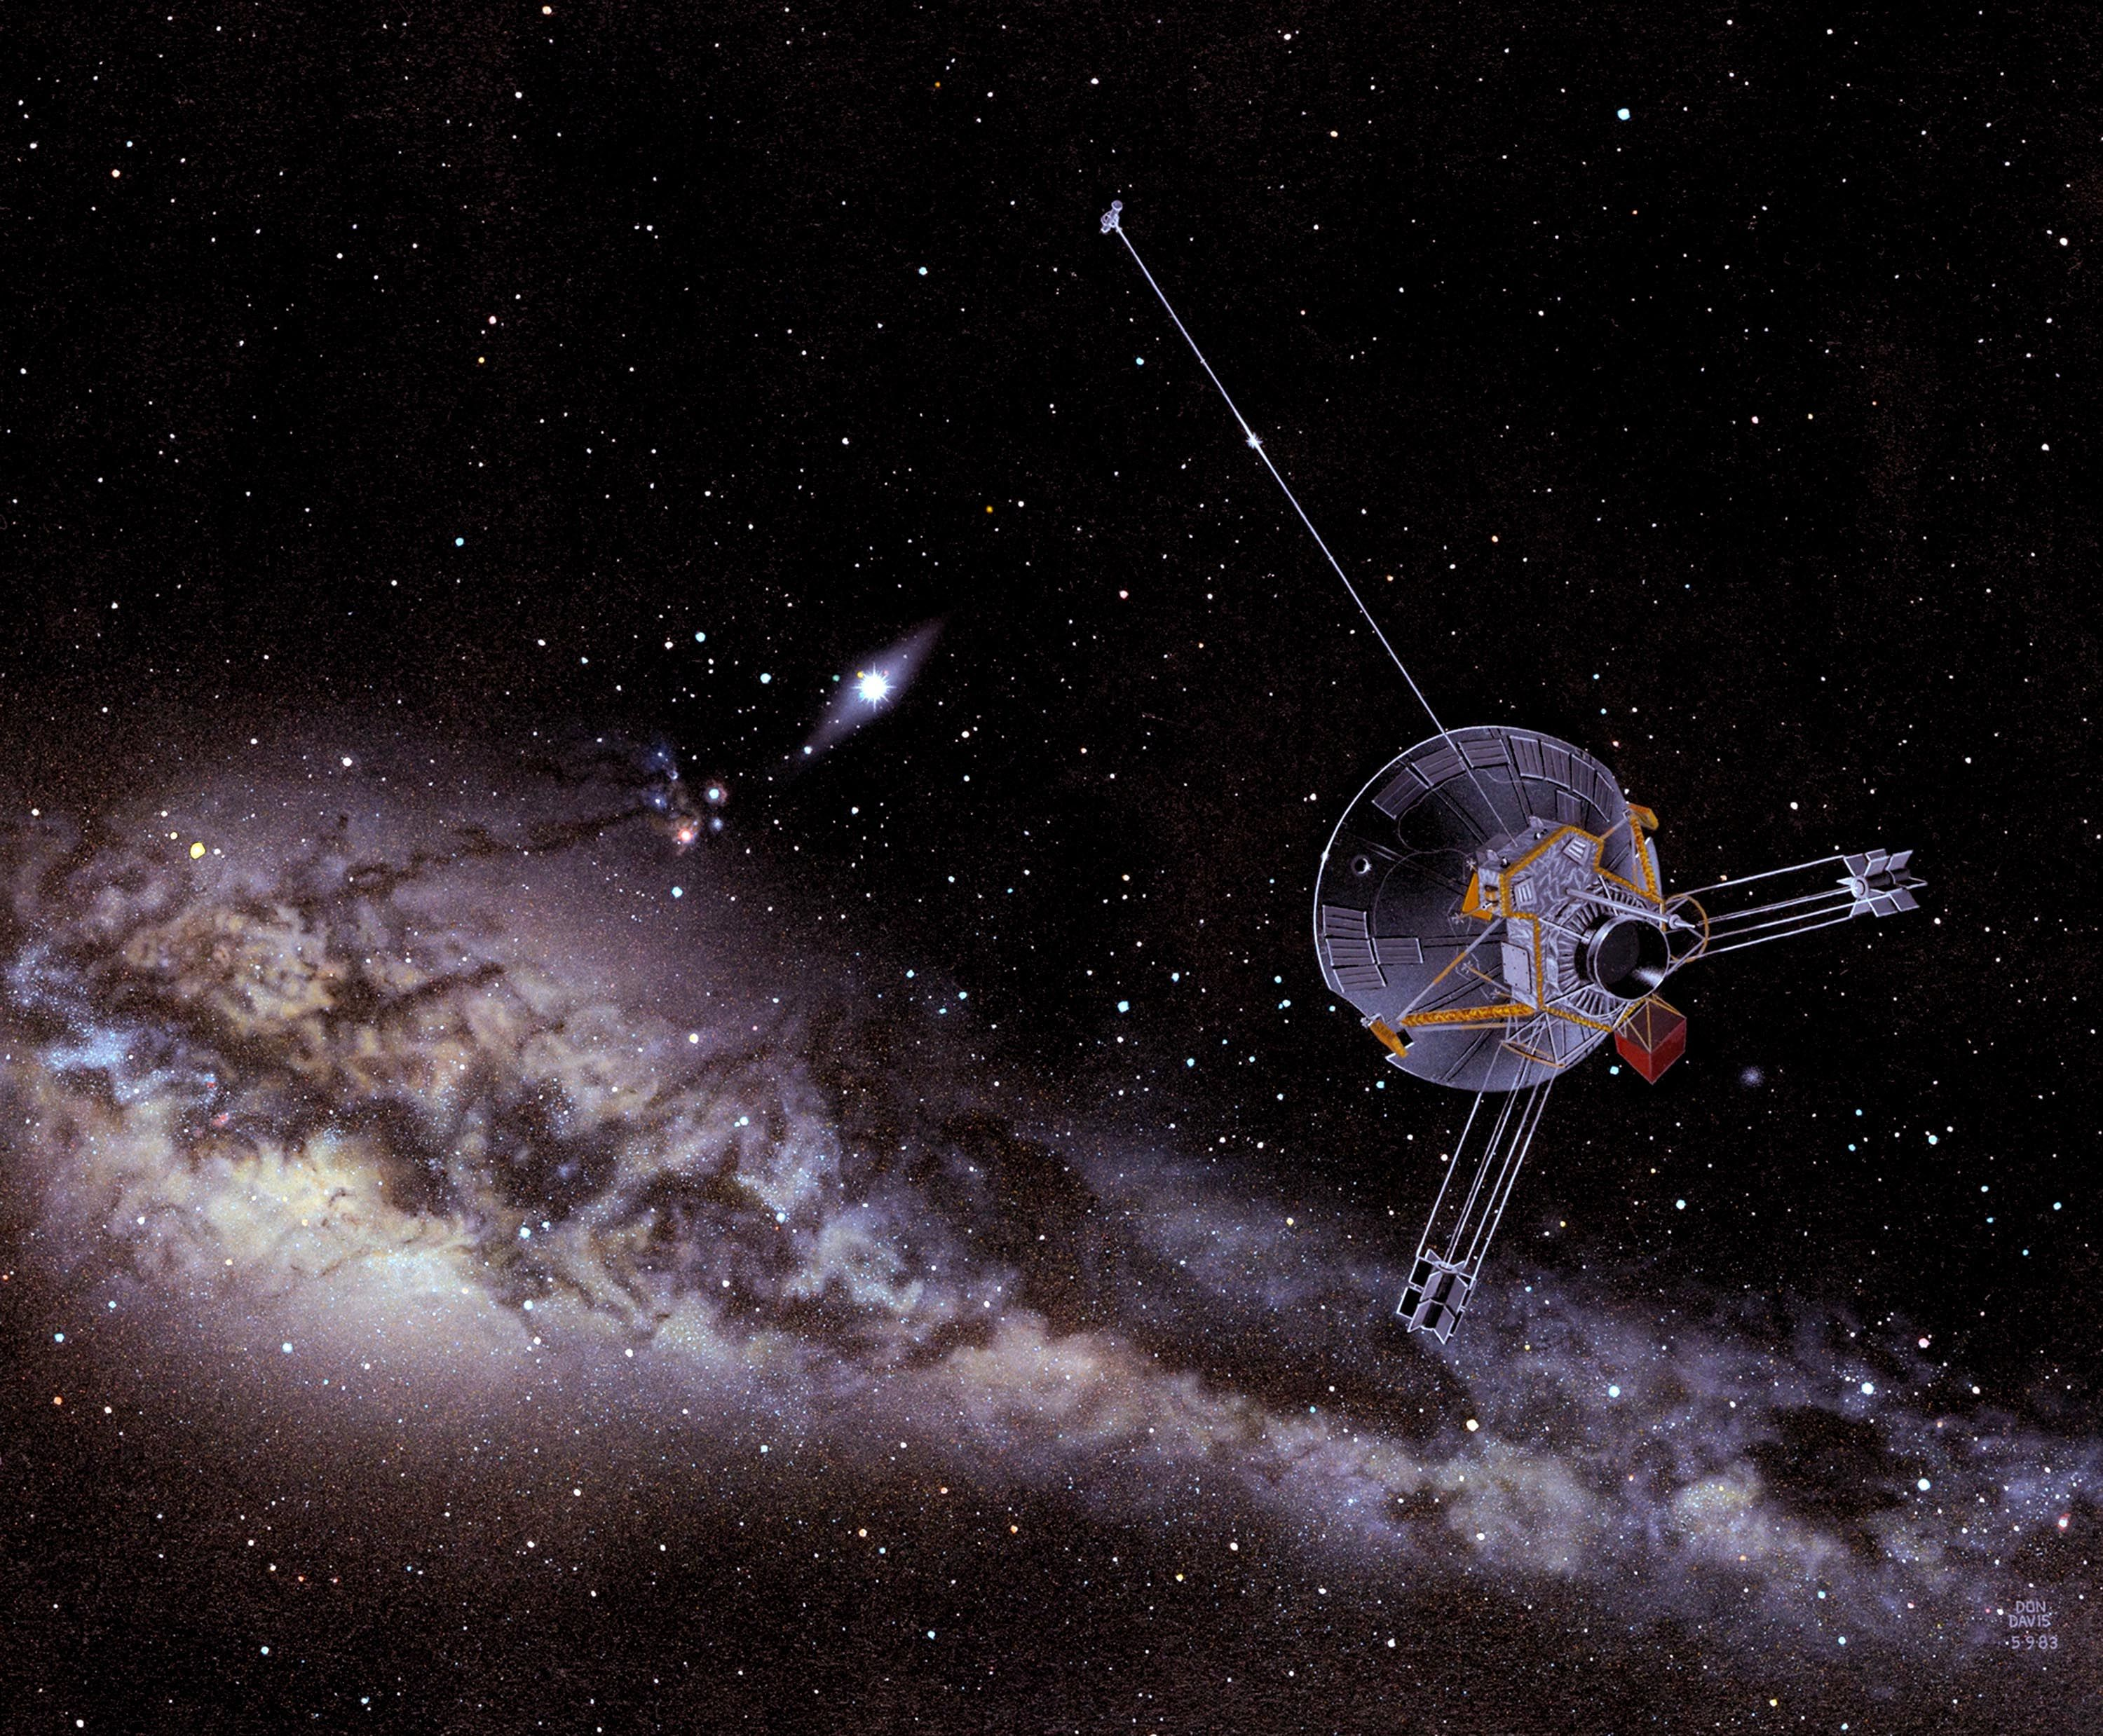 An artist&#39;s impression of a Pioneer<br /> spacecraft on its way to interstellar<br /> space. Image credit: NASA Ames&nbsp;&nbsp;&nbsp;&nbsp;&nbsp;&nbsp;<br /> <a href='http://www.nasa.gov/centers/ames/images/content/739472main_AC83-0351_1.jpg' class='bbc_url' title='External link' rel='nofollow external'>Click for full resolution</a>